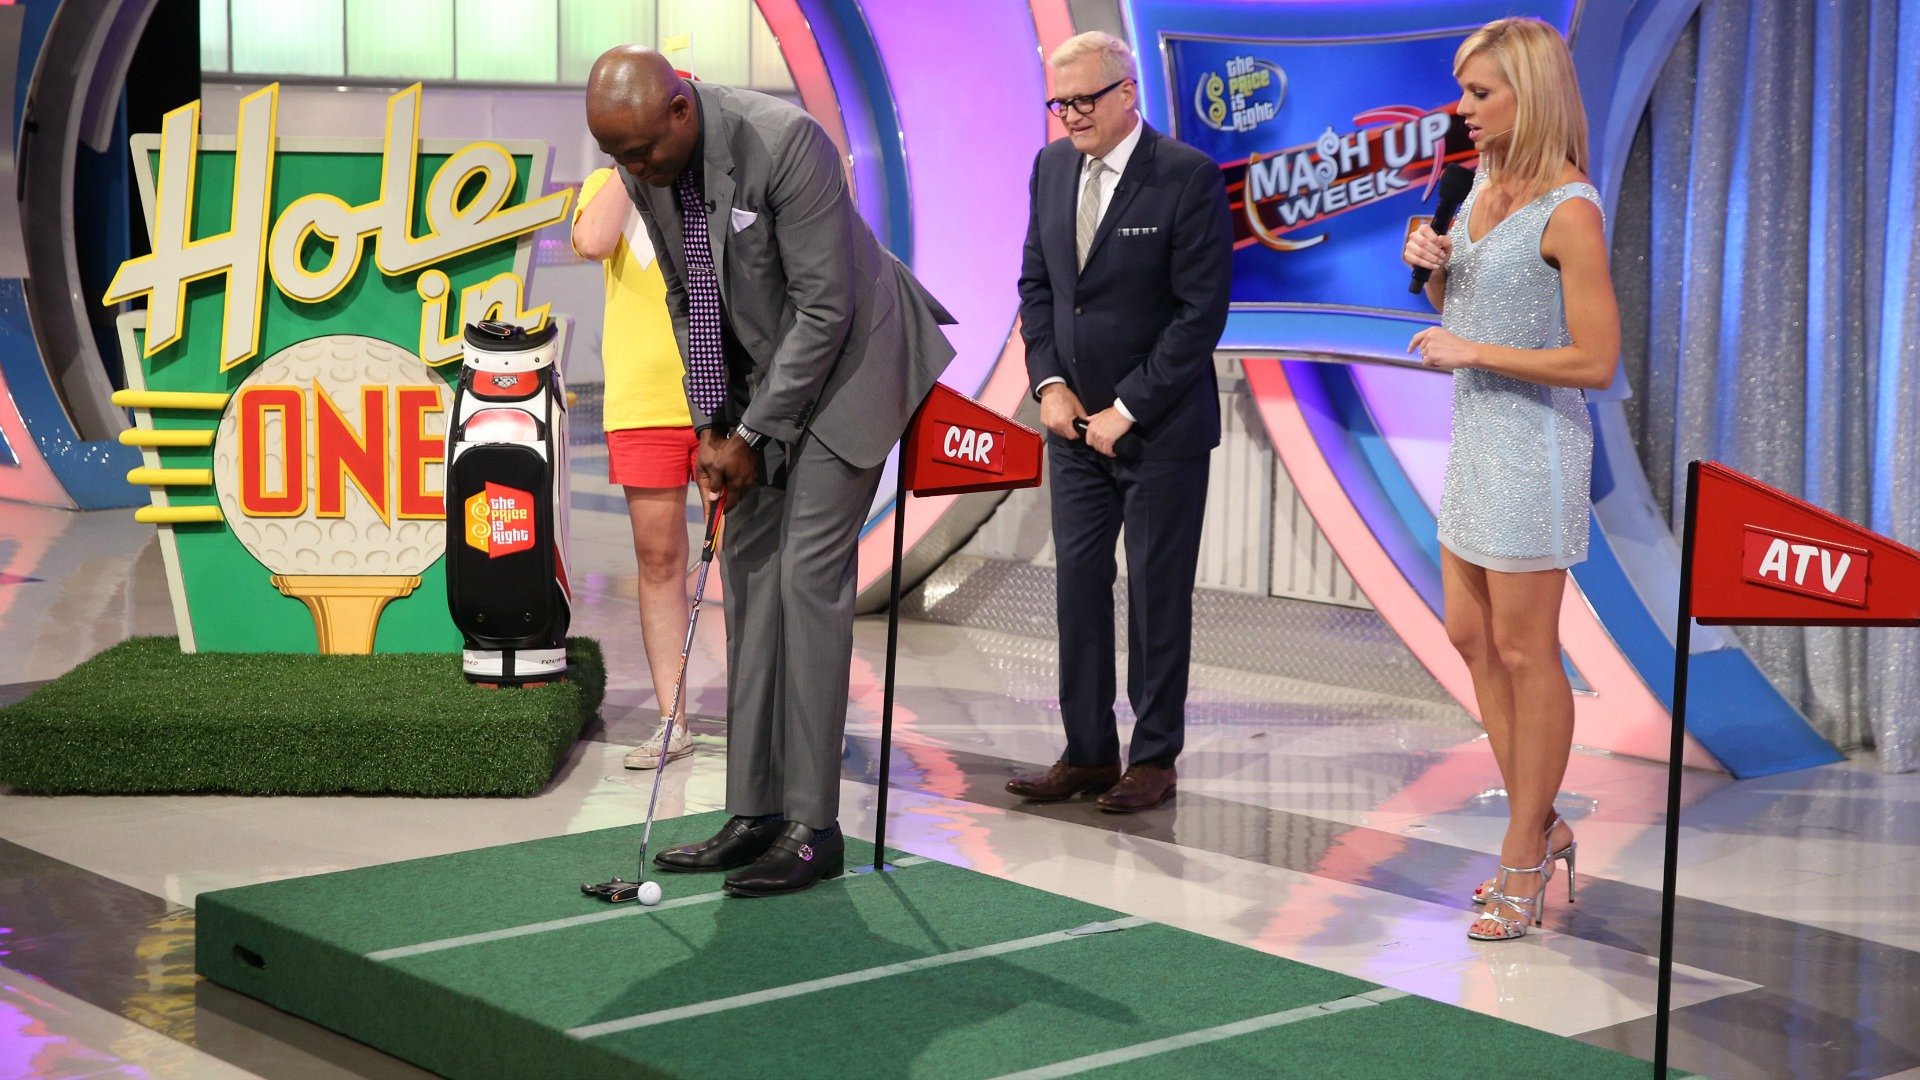 Wayne plays Hole In One.